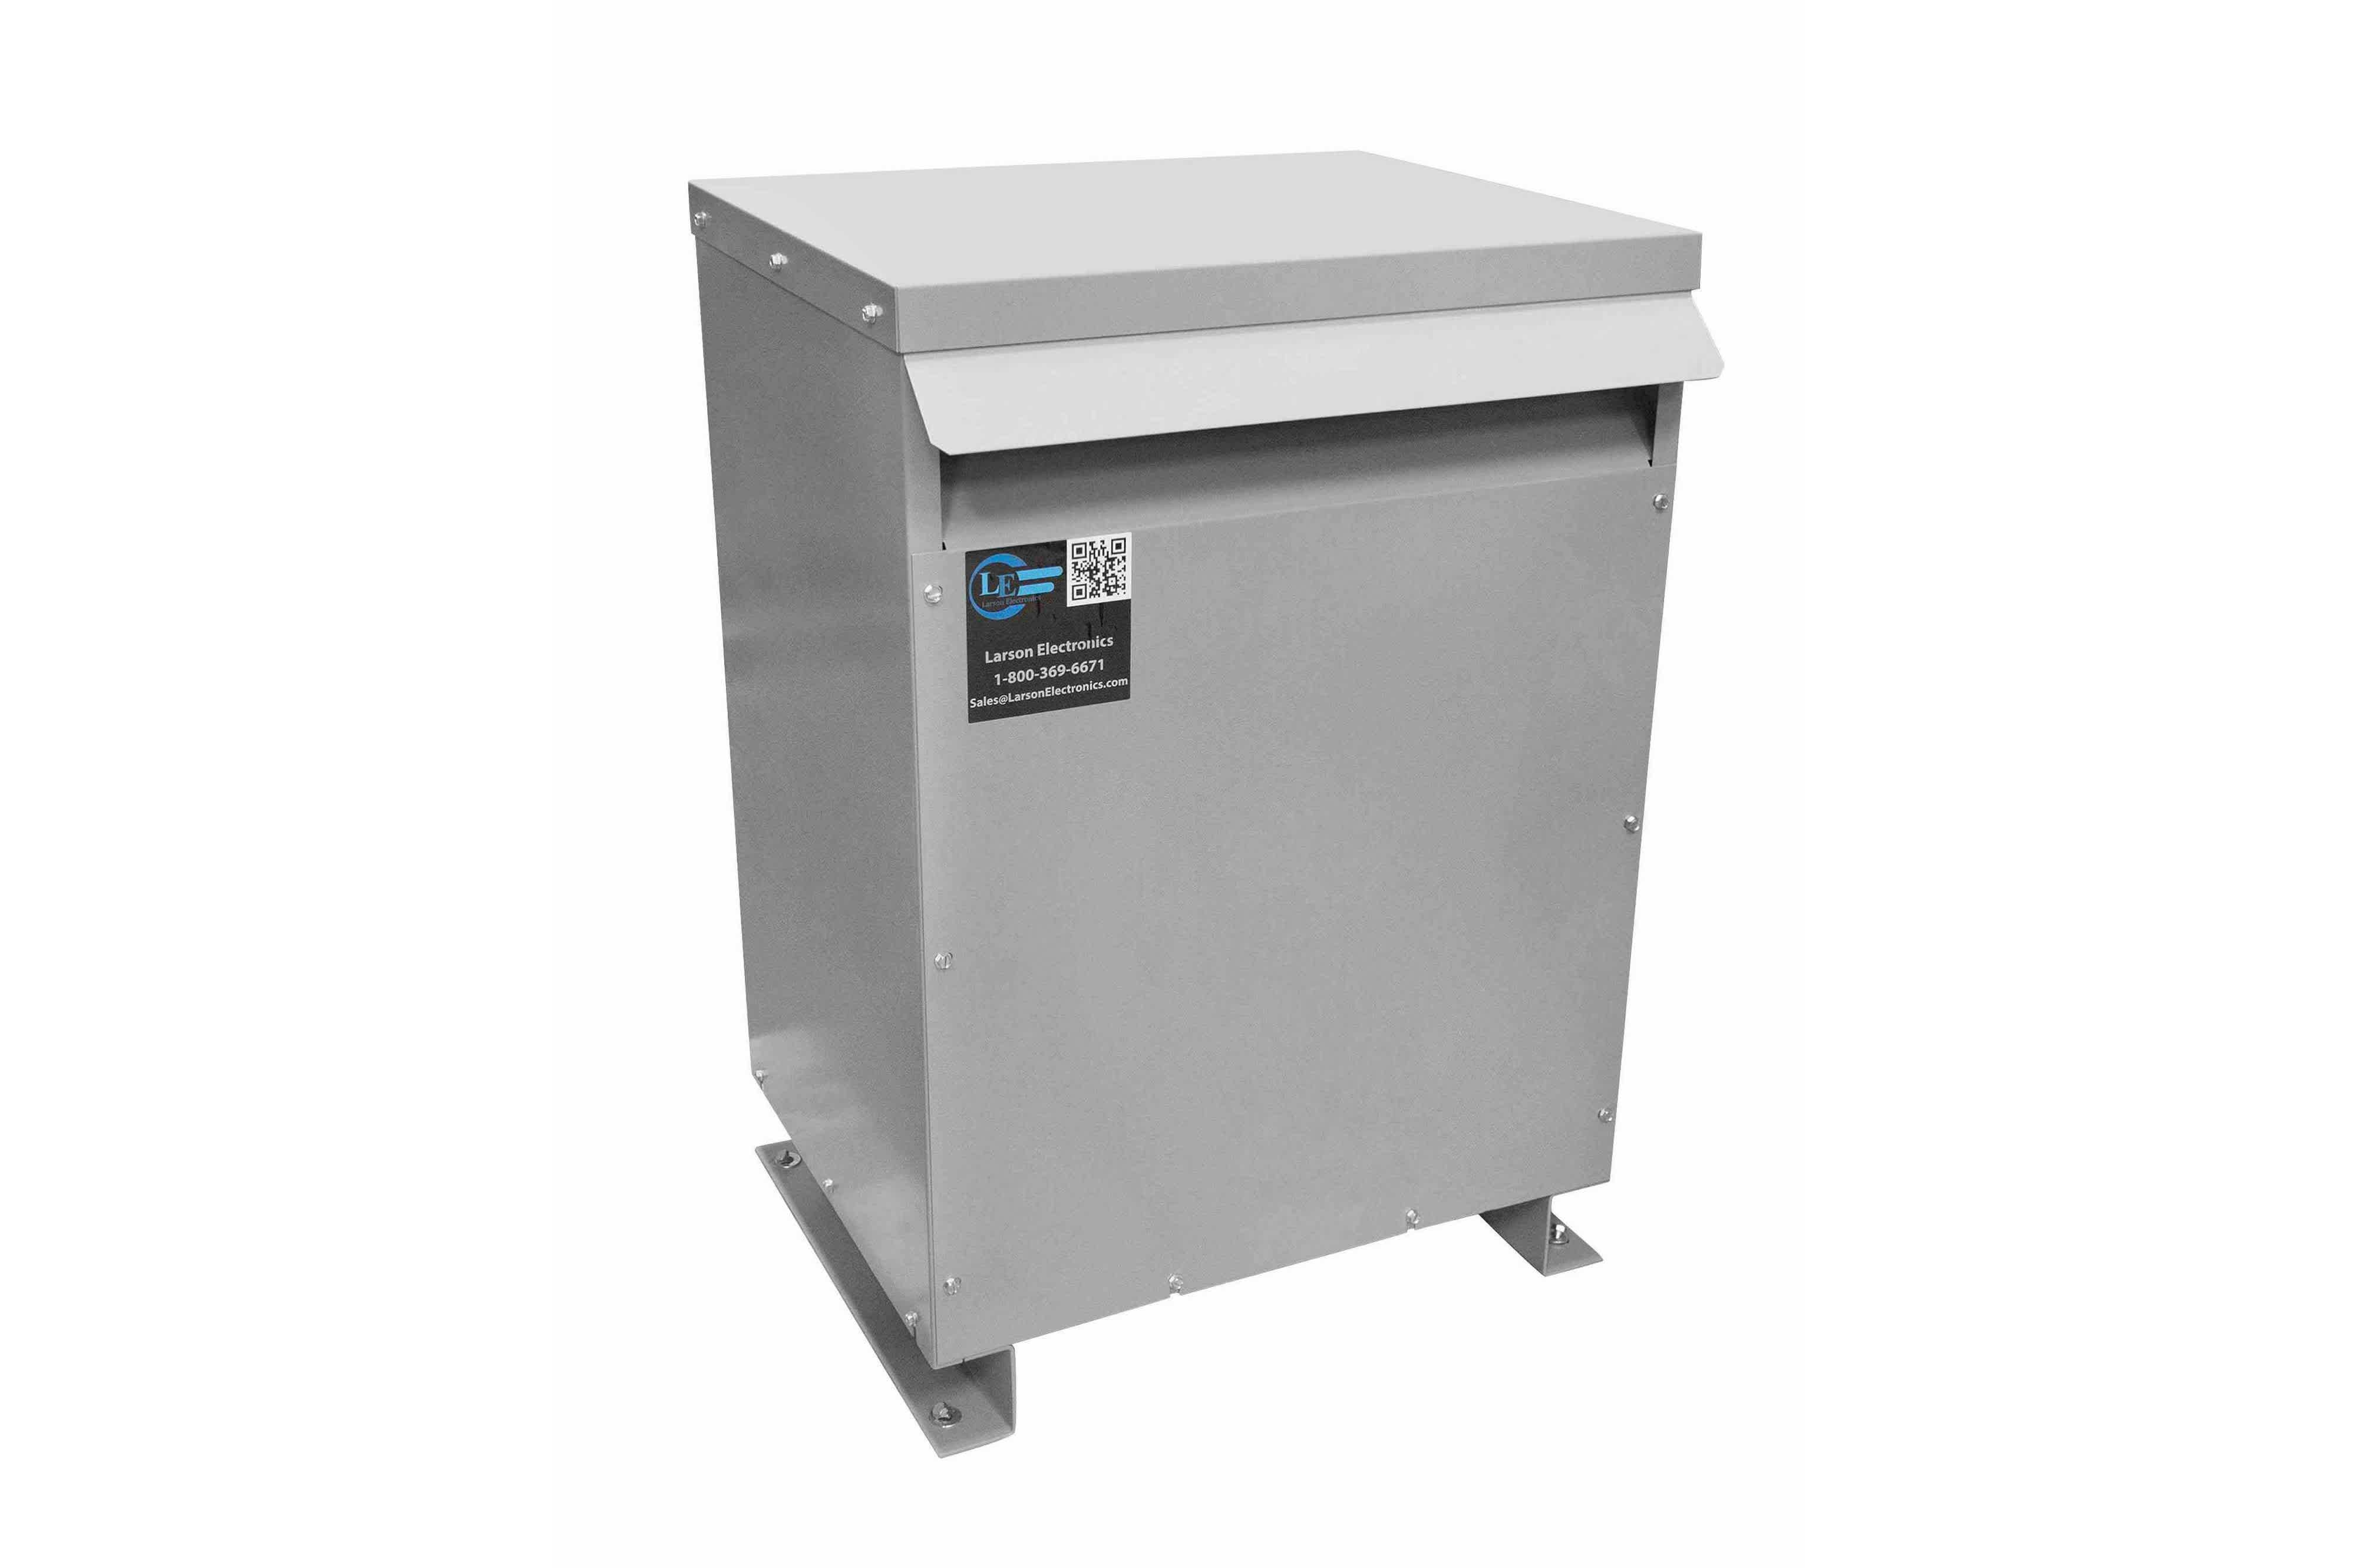 26 kVA 3PH DOE Transformer, 208V Delta Primary, 415Y/240 Wye-N Secondary, N3R, Ventilated, 60 Hz